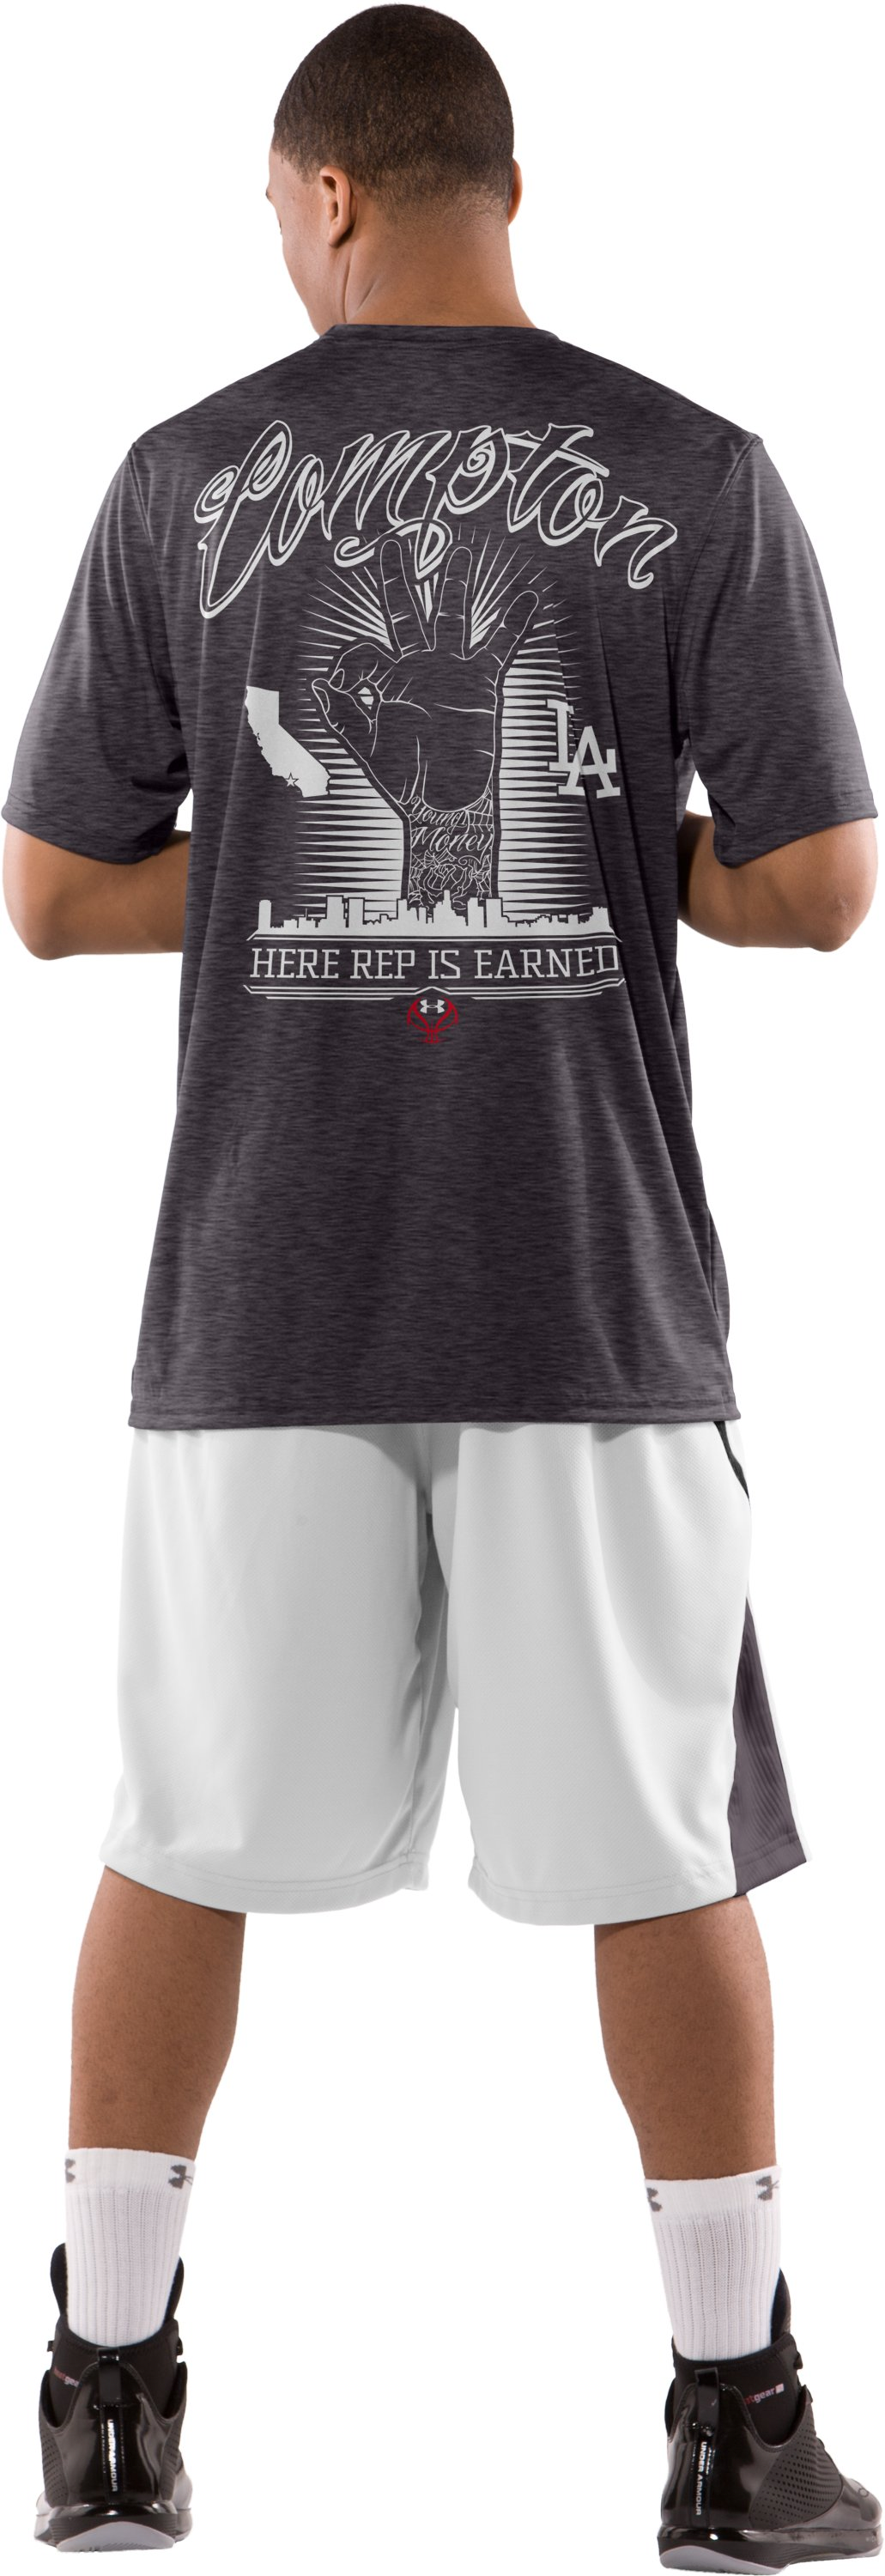 Men's Brandon Jennings Player Reppin' T-Shirt, Carbon Heather, zoomed image